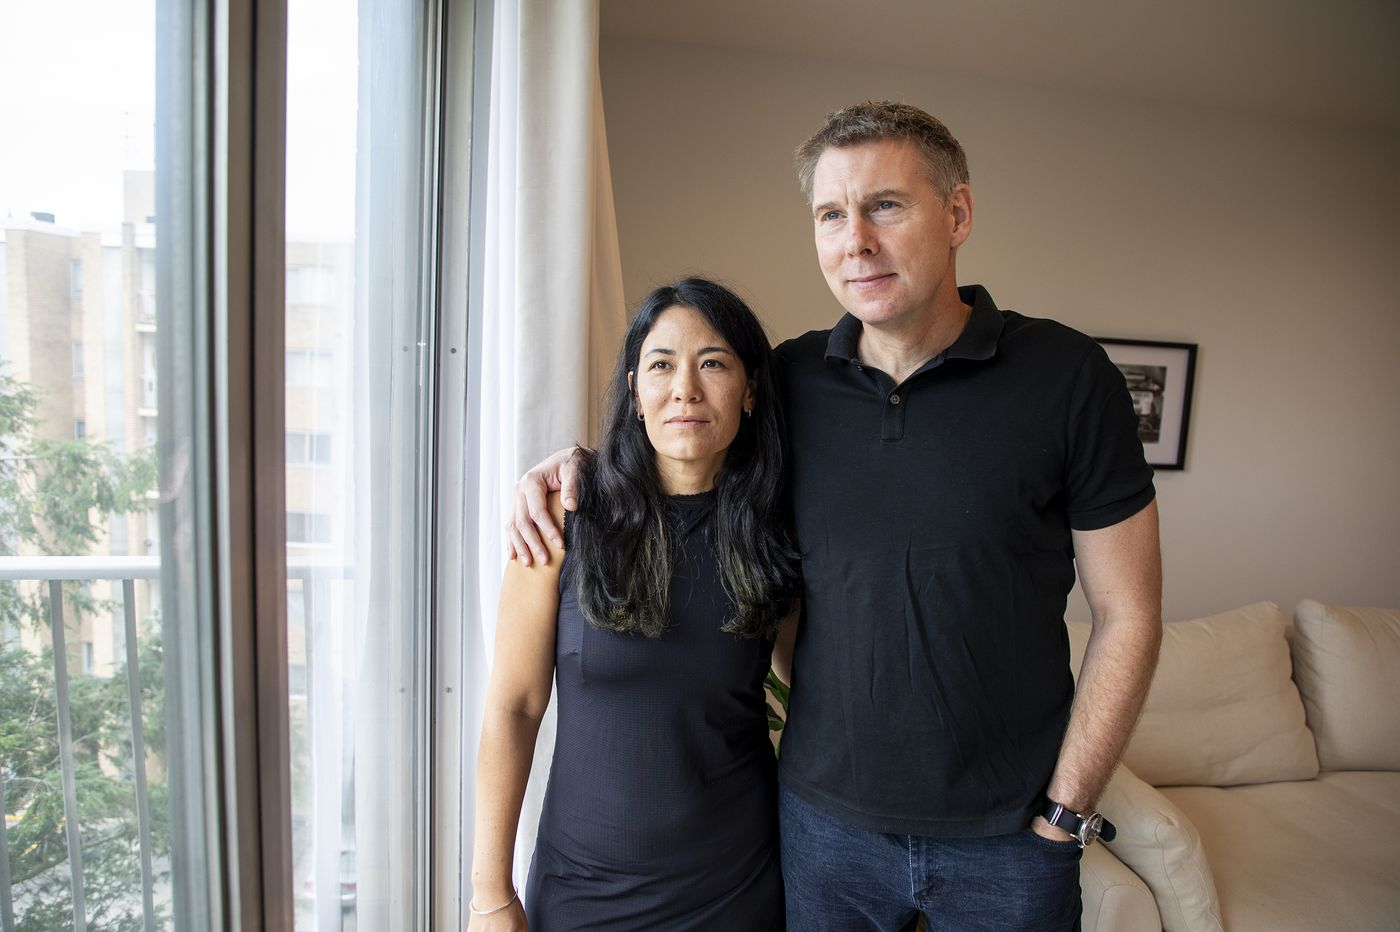 A challenging remodel in Jenkintown converts apartment for aging — and growing up